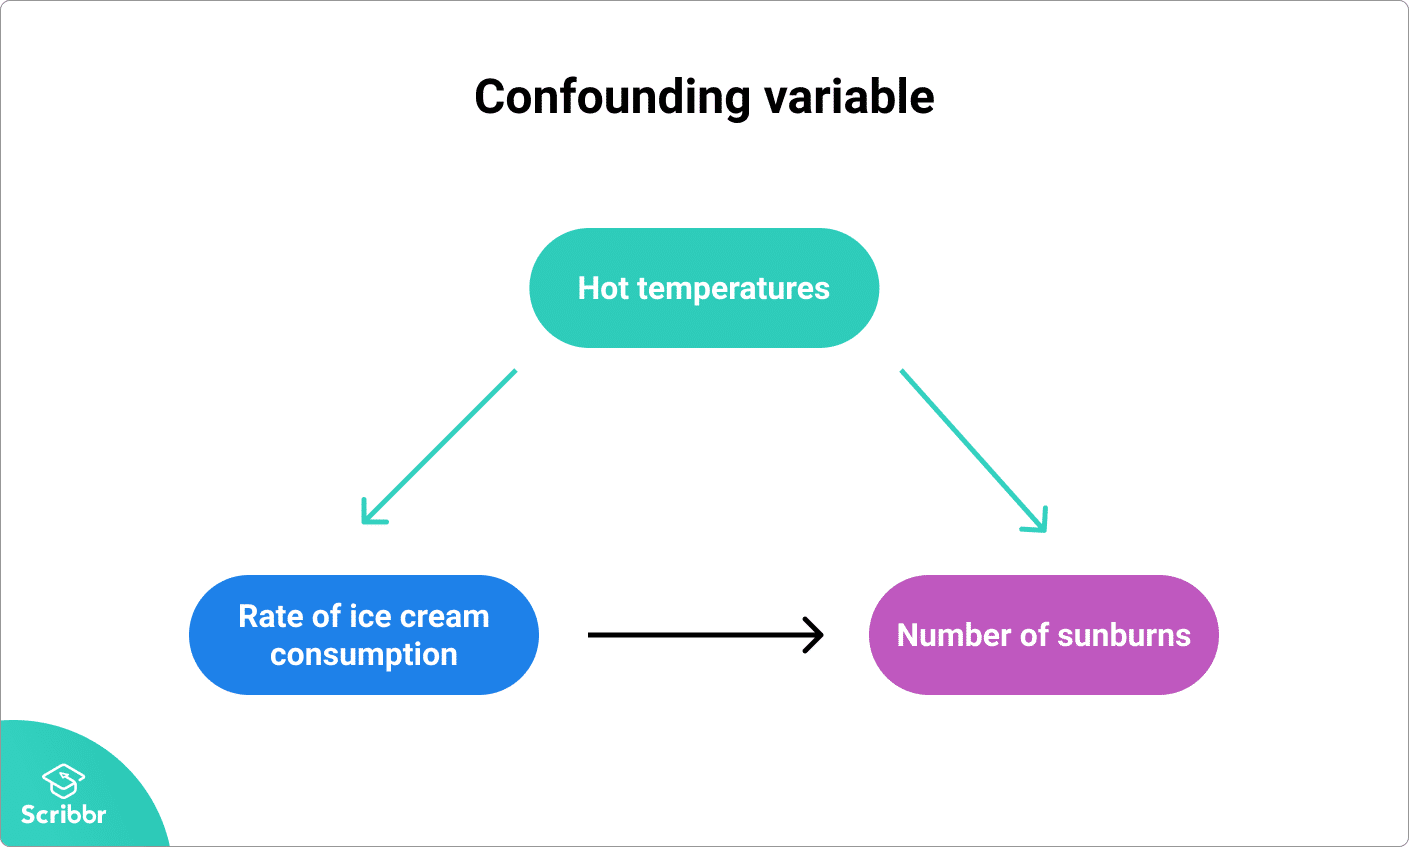 Example of a confounding variable